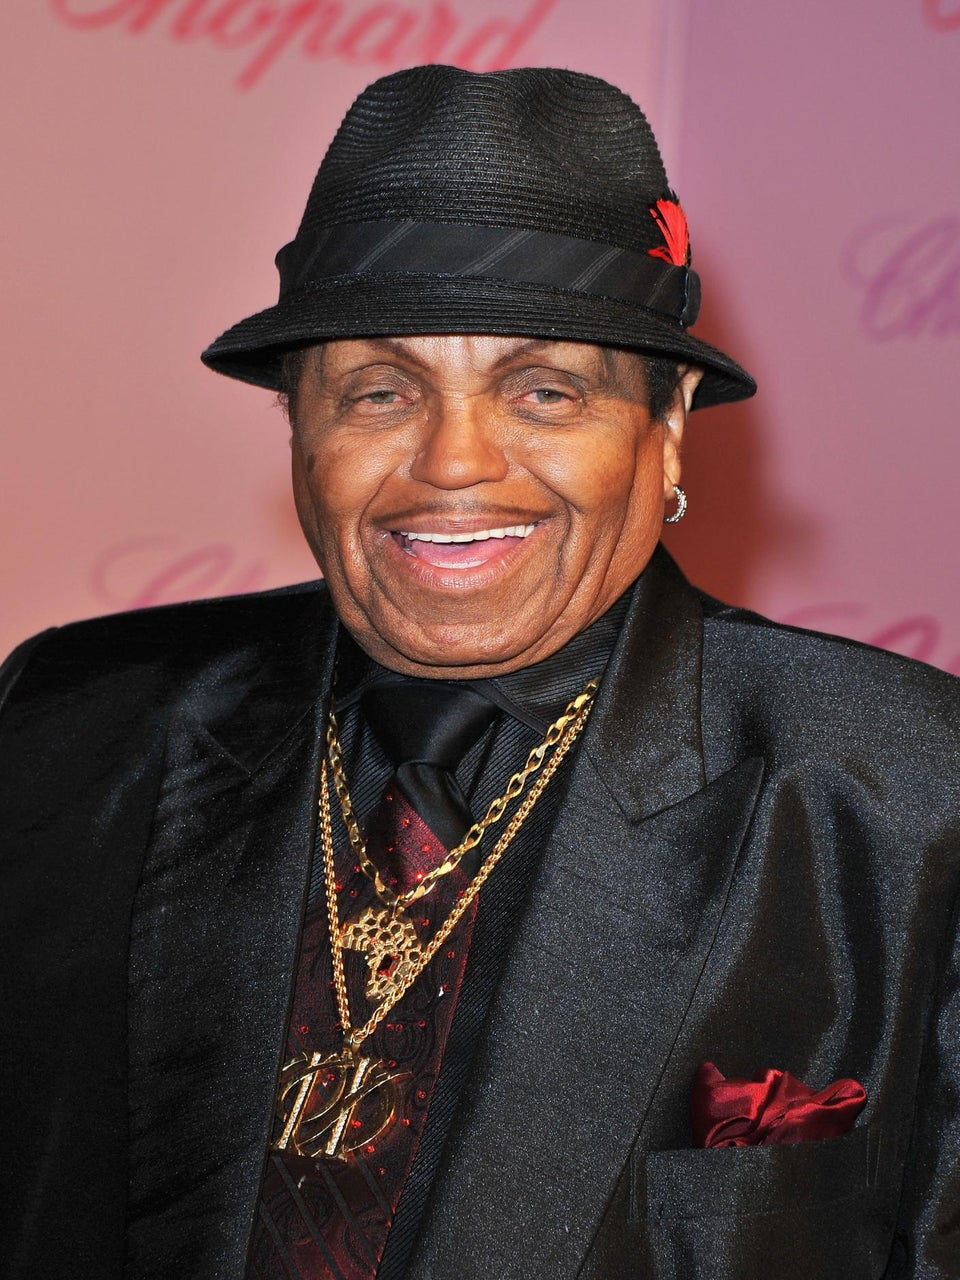 Family Members Say Joe Jackson Is Doing Well After Stroke